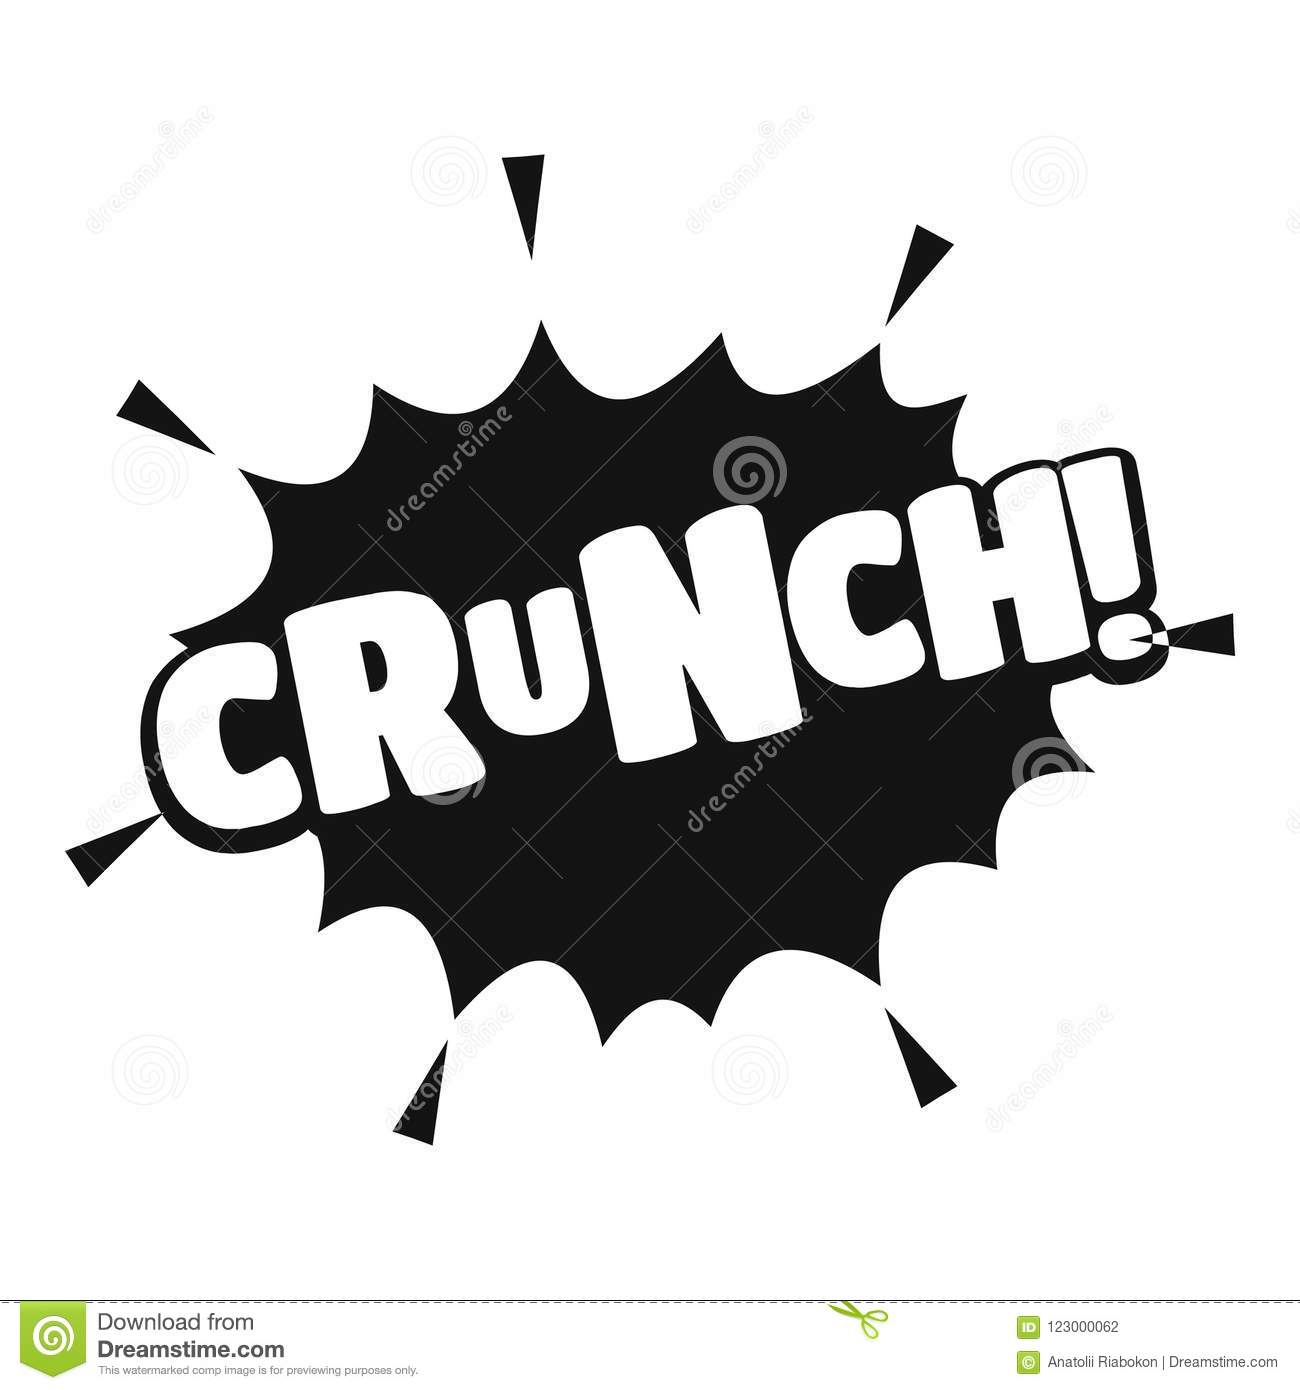 Comic boom crunch icon, simple black style